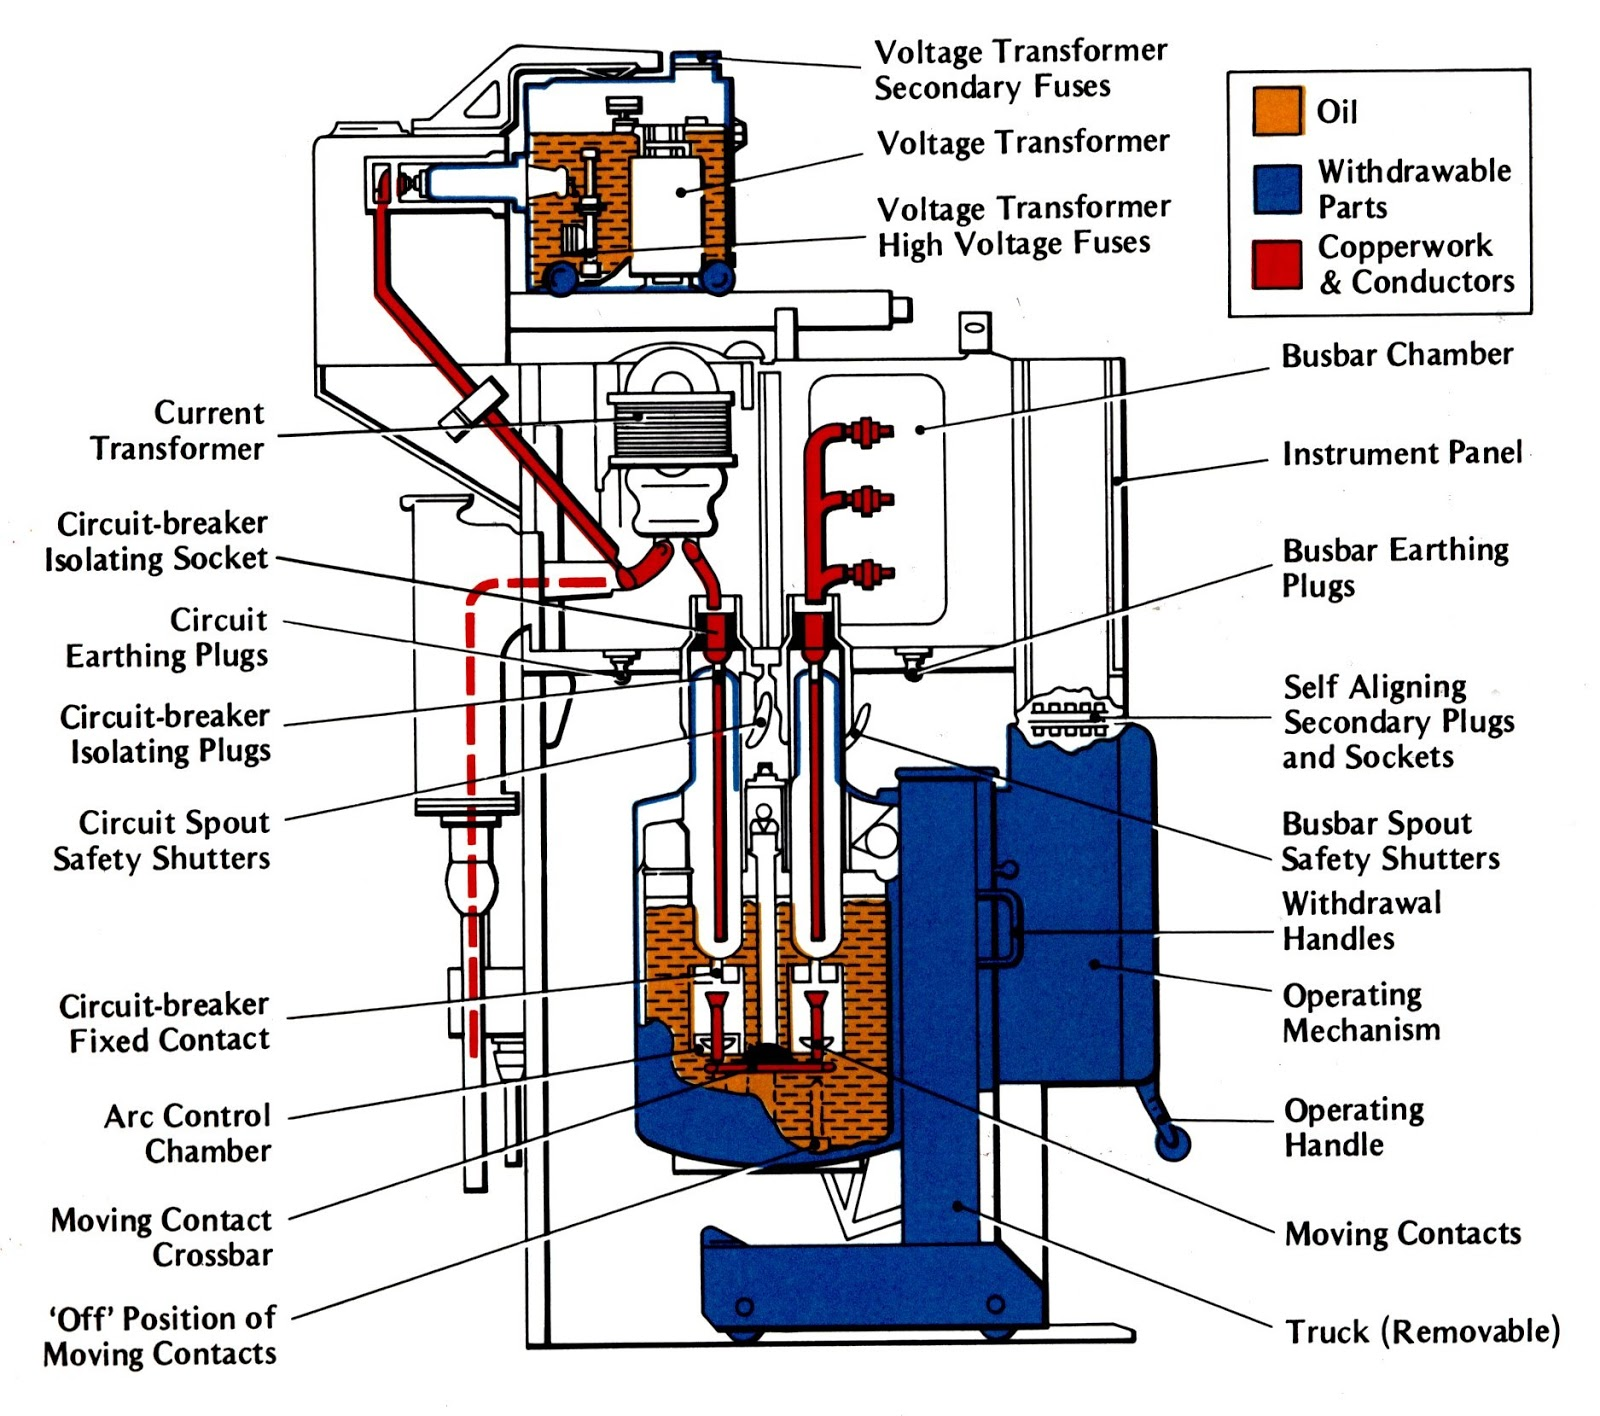 Three Phase Wiring Breakers Starting Know About Diagram 3 Breaker Panel Chapter 2 High Voltage Switchgear Lekule Blog